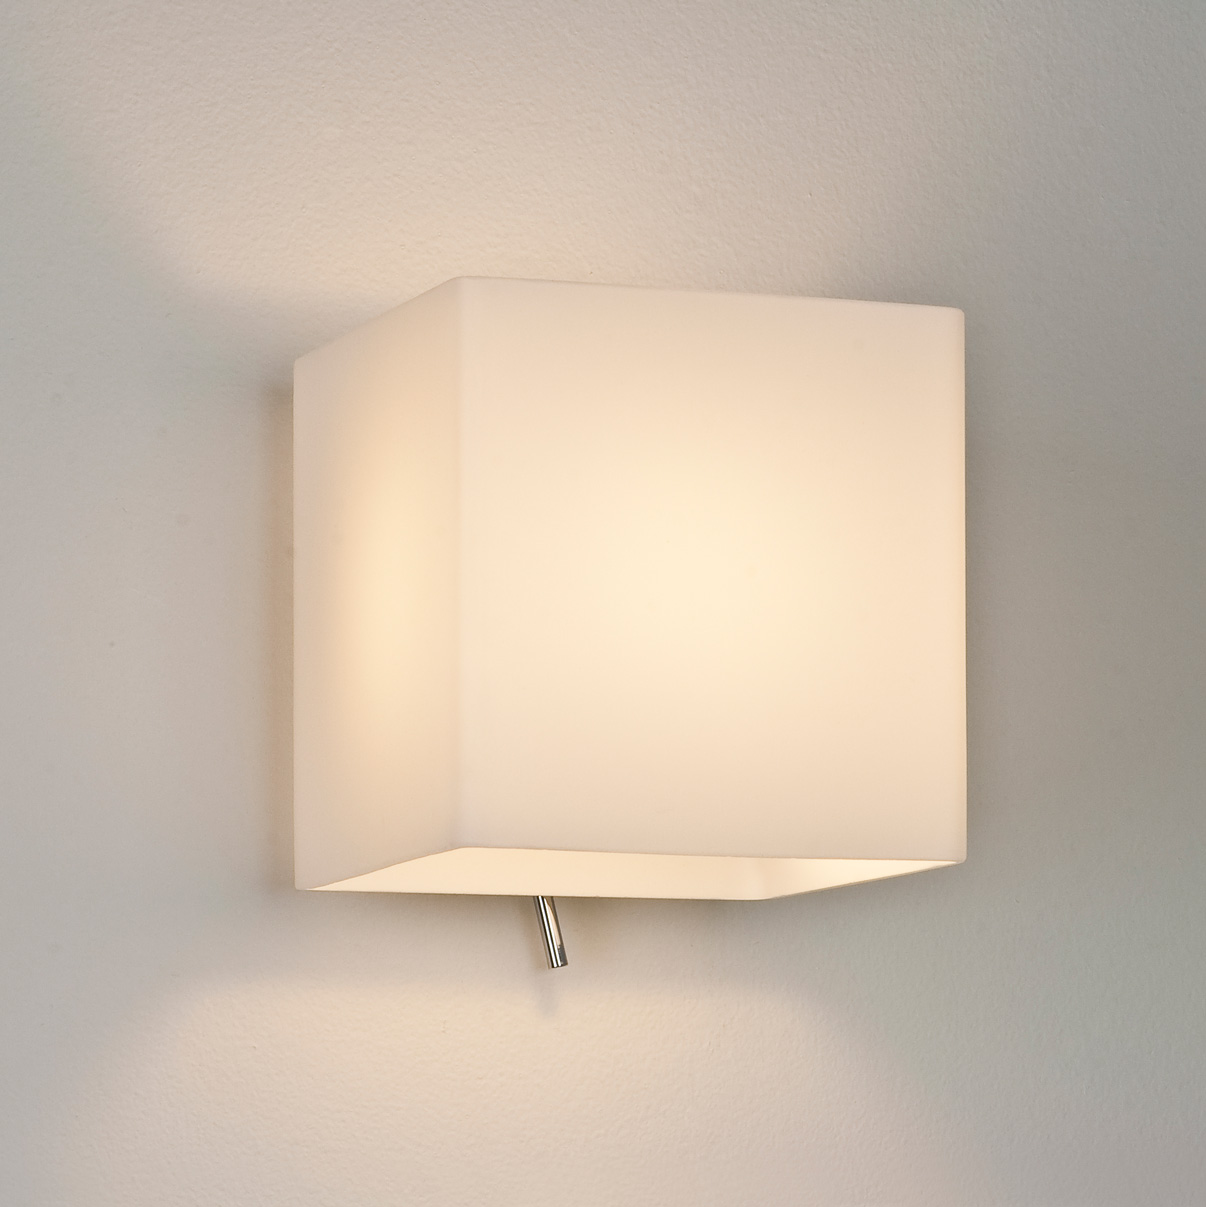 Astro Luga square 0930 dimmable toggle switch wall light 60W E14 lamp chrome Liminaires